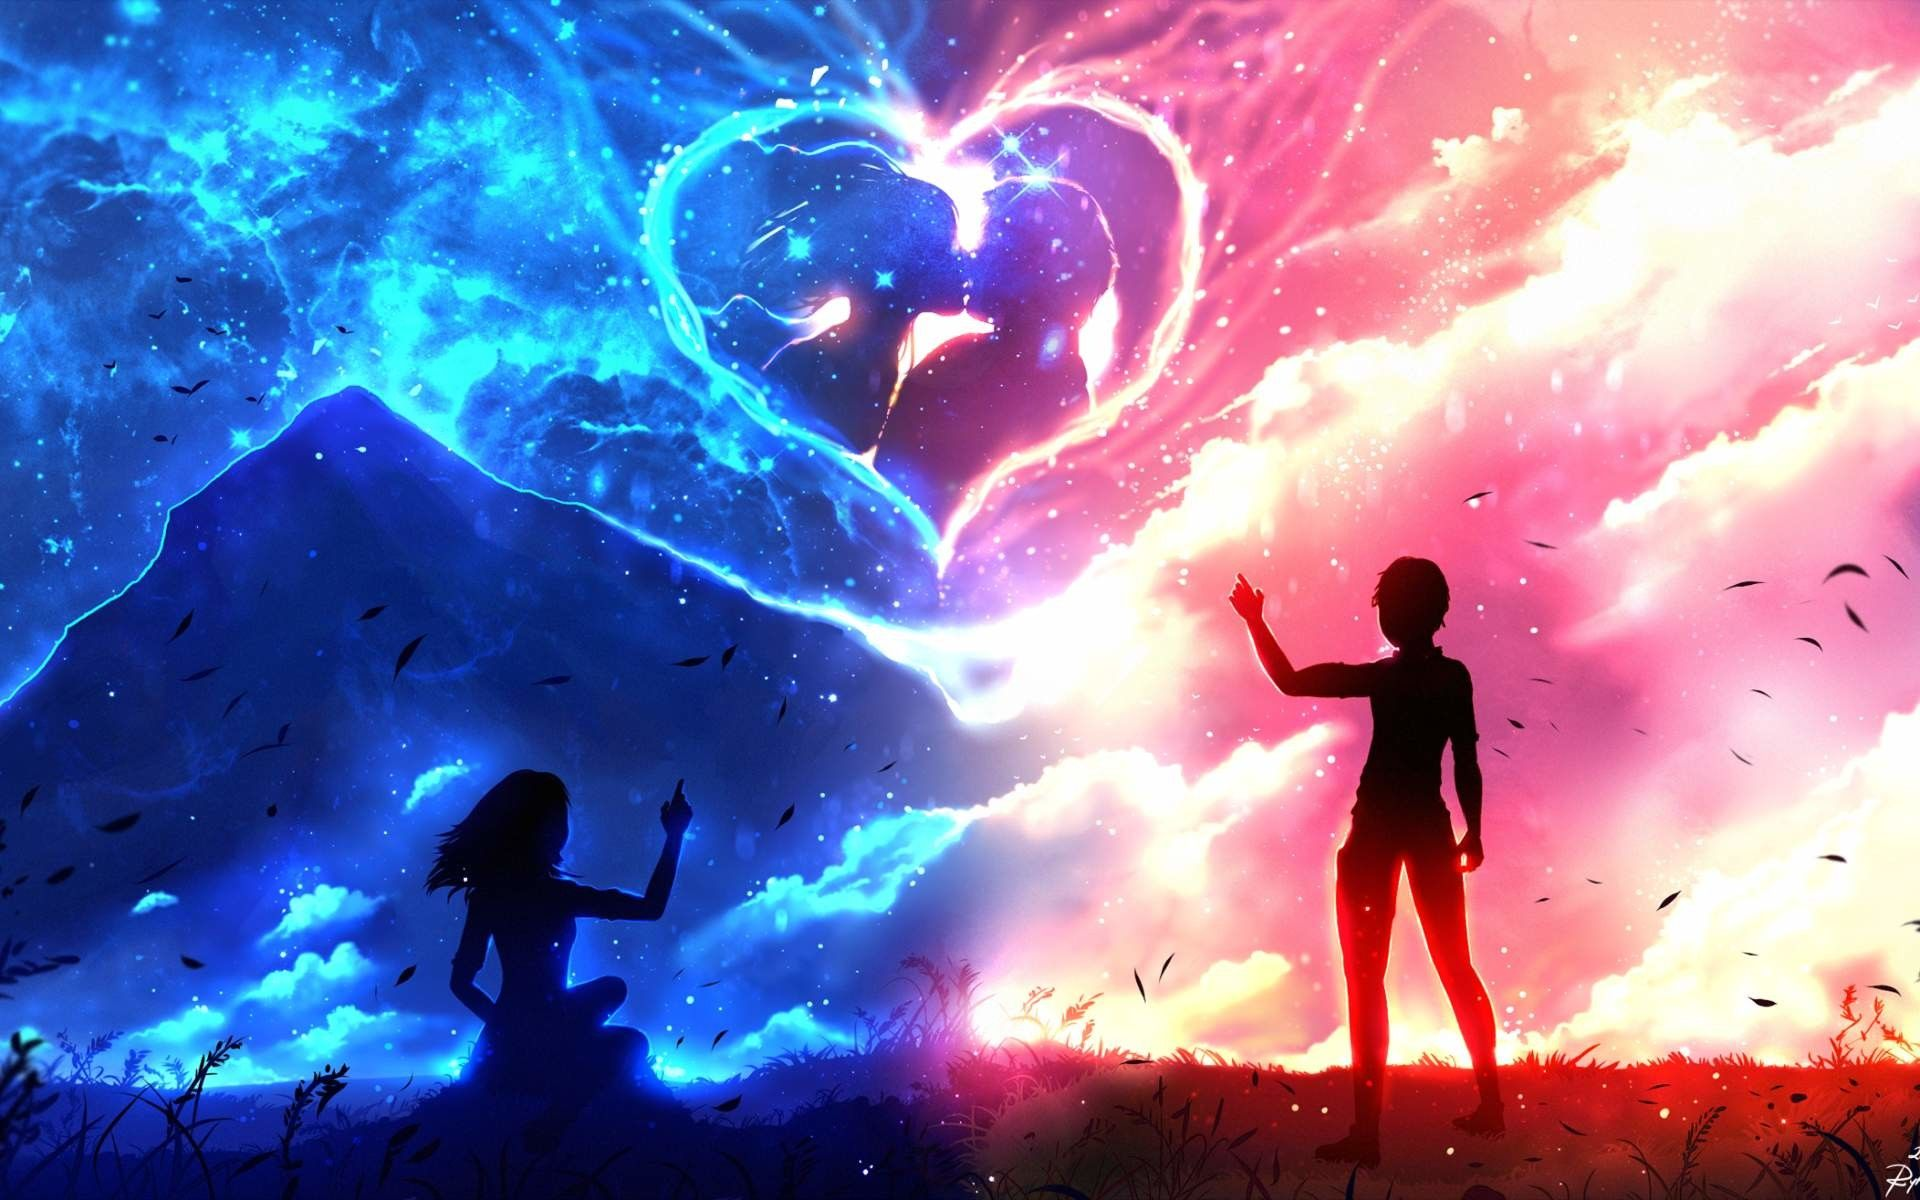 Anime Love Wallpapers   Top Anime Love Backgrounds 1920x1200